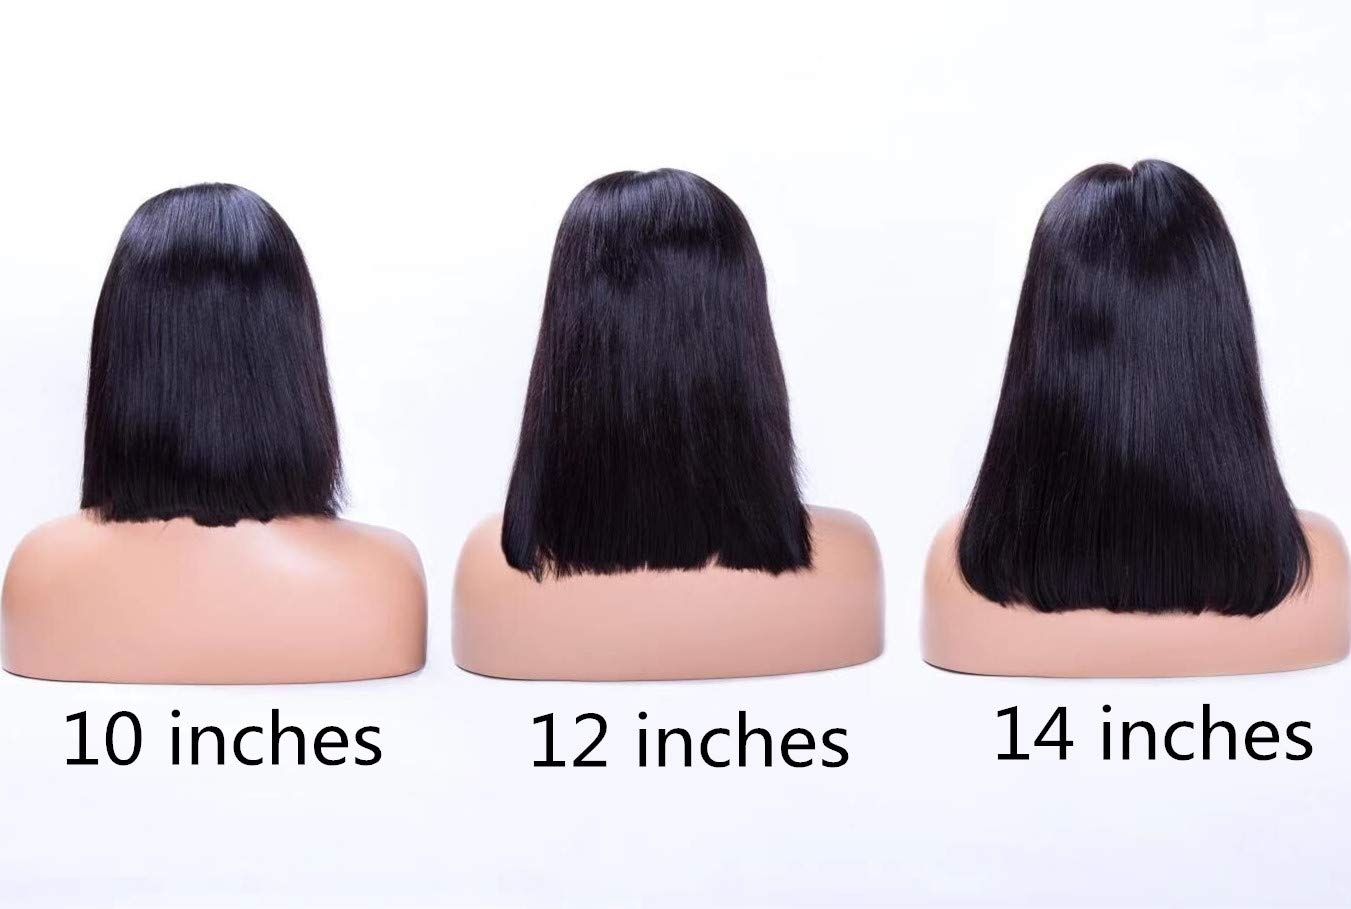 LIAZAHAIR 13x6 Deep Part Short Bob Lace Front Wigs Human Hair Pre Plucked Full End 150% Density Brazilian Straight Bob Wigs With Baby Hair For Women (12 inches, Natural color)